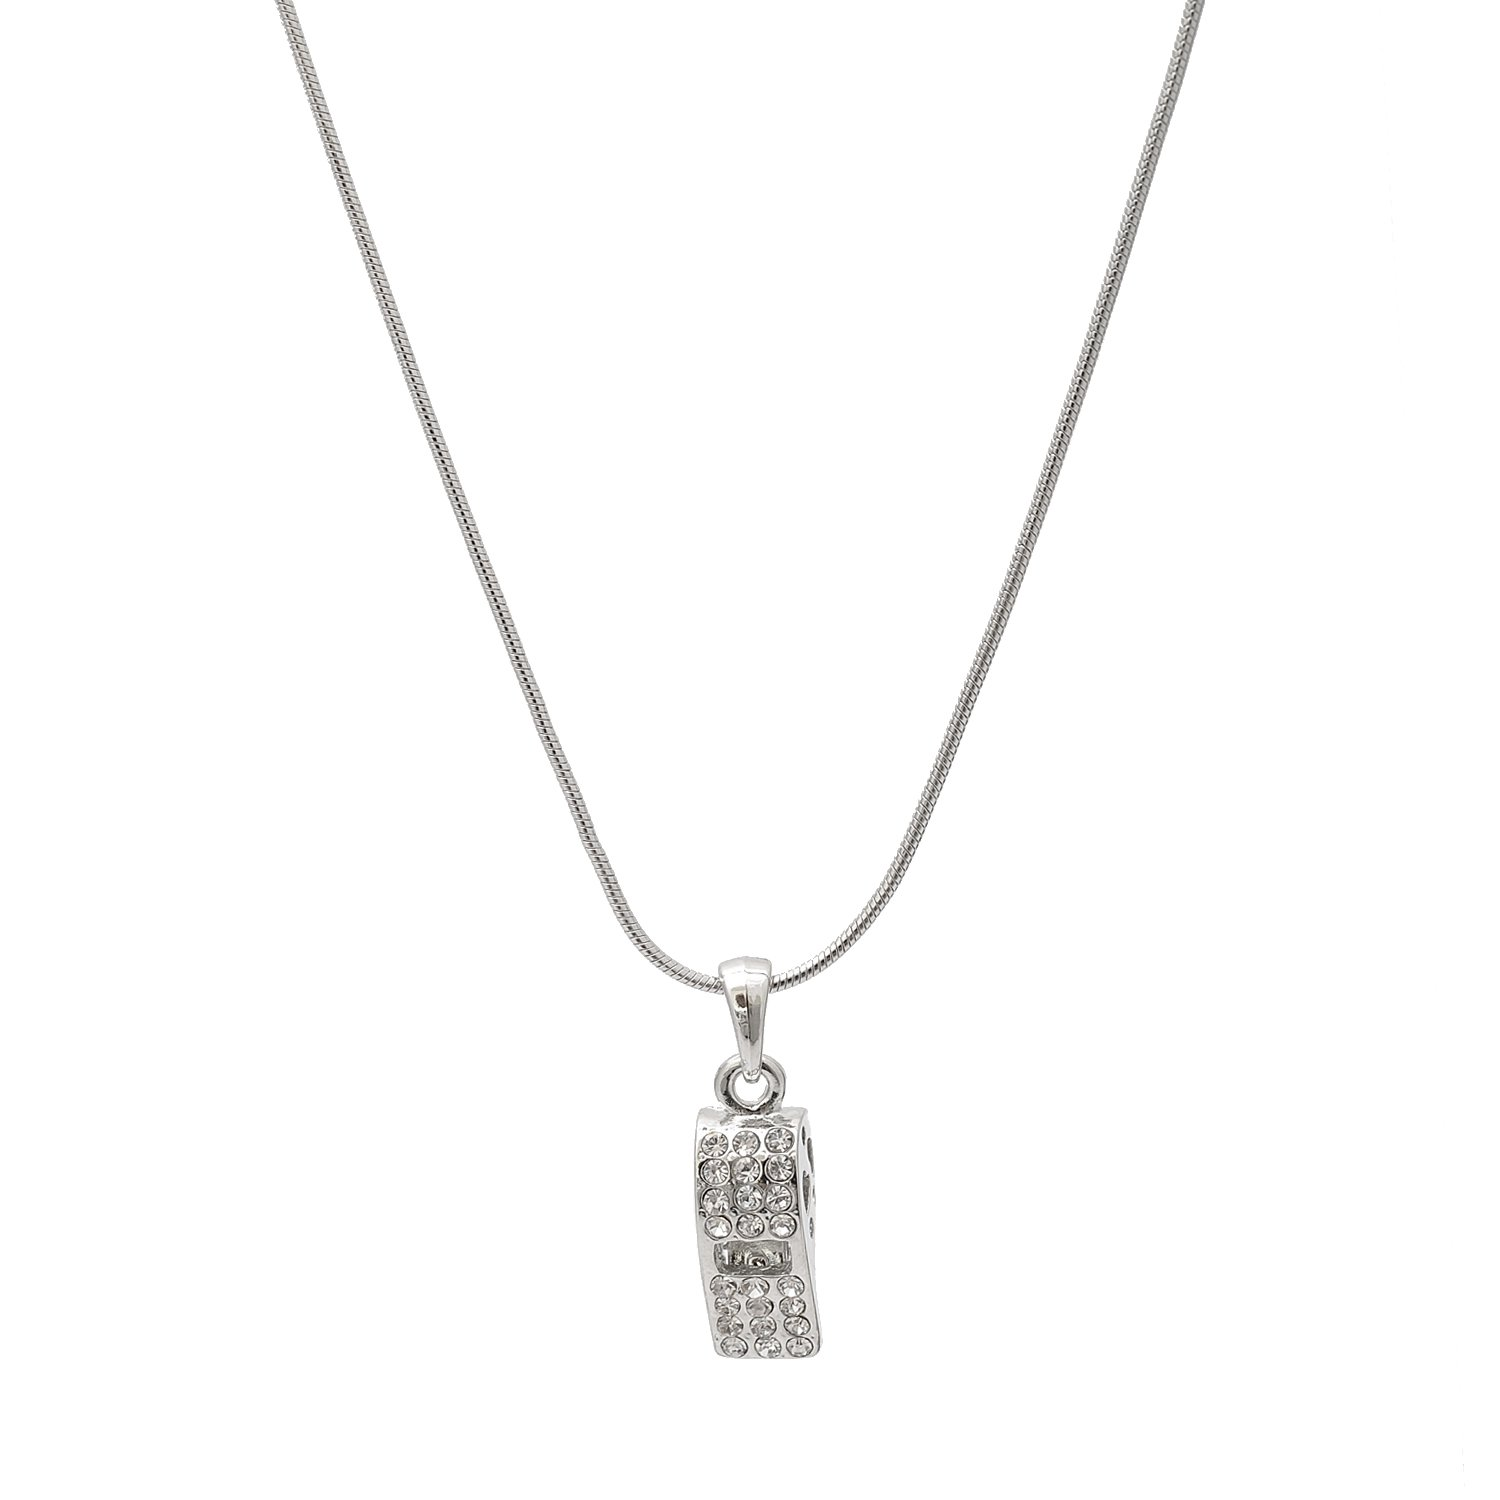 Spinningdaisy Silver Plated Crystal Whistle Necklace